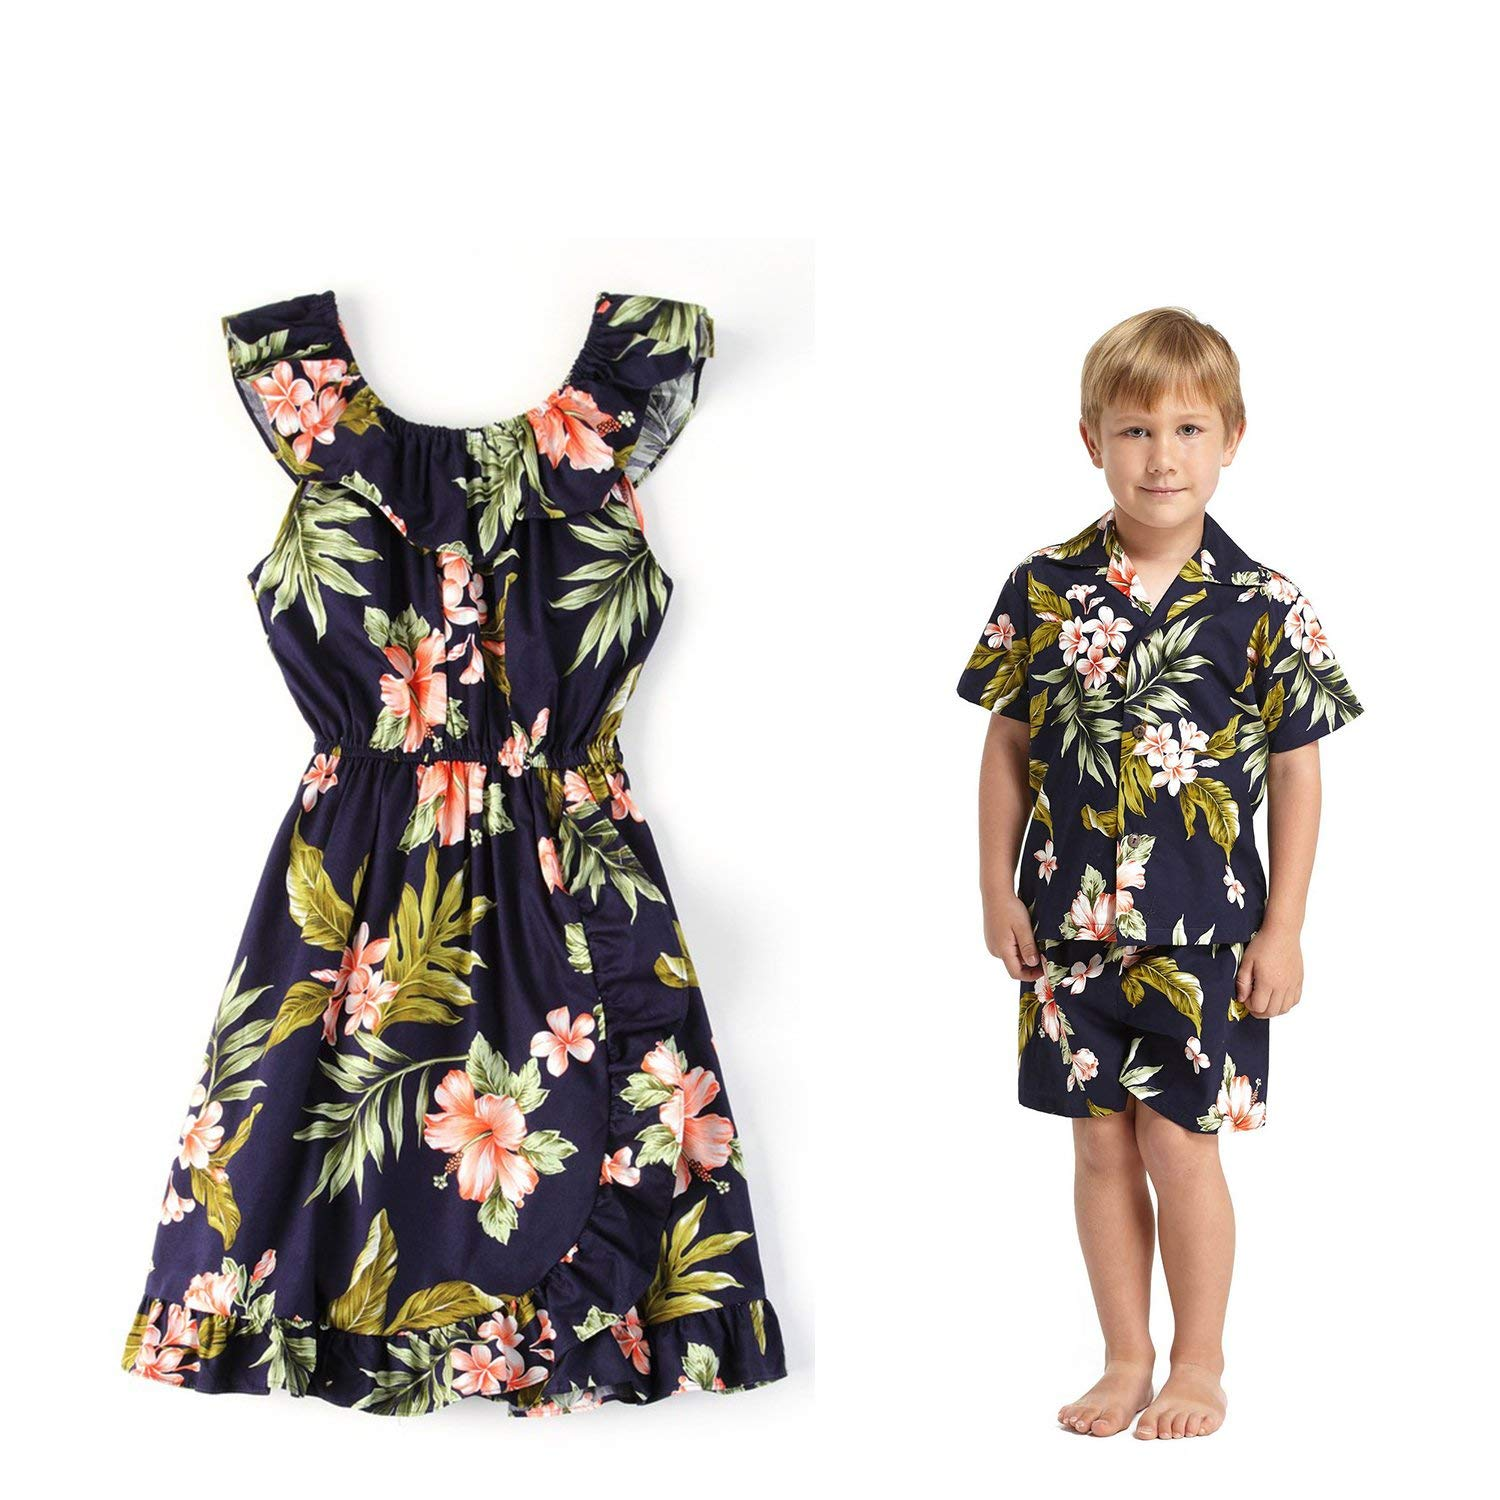 337946aaa565 Get Quotations · Hawaii Hangover Matching Boy and Girl Siblings Hawaiian  Luau Outfits In Navy With Pink Floral